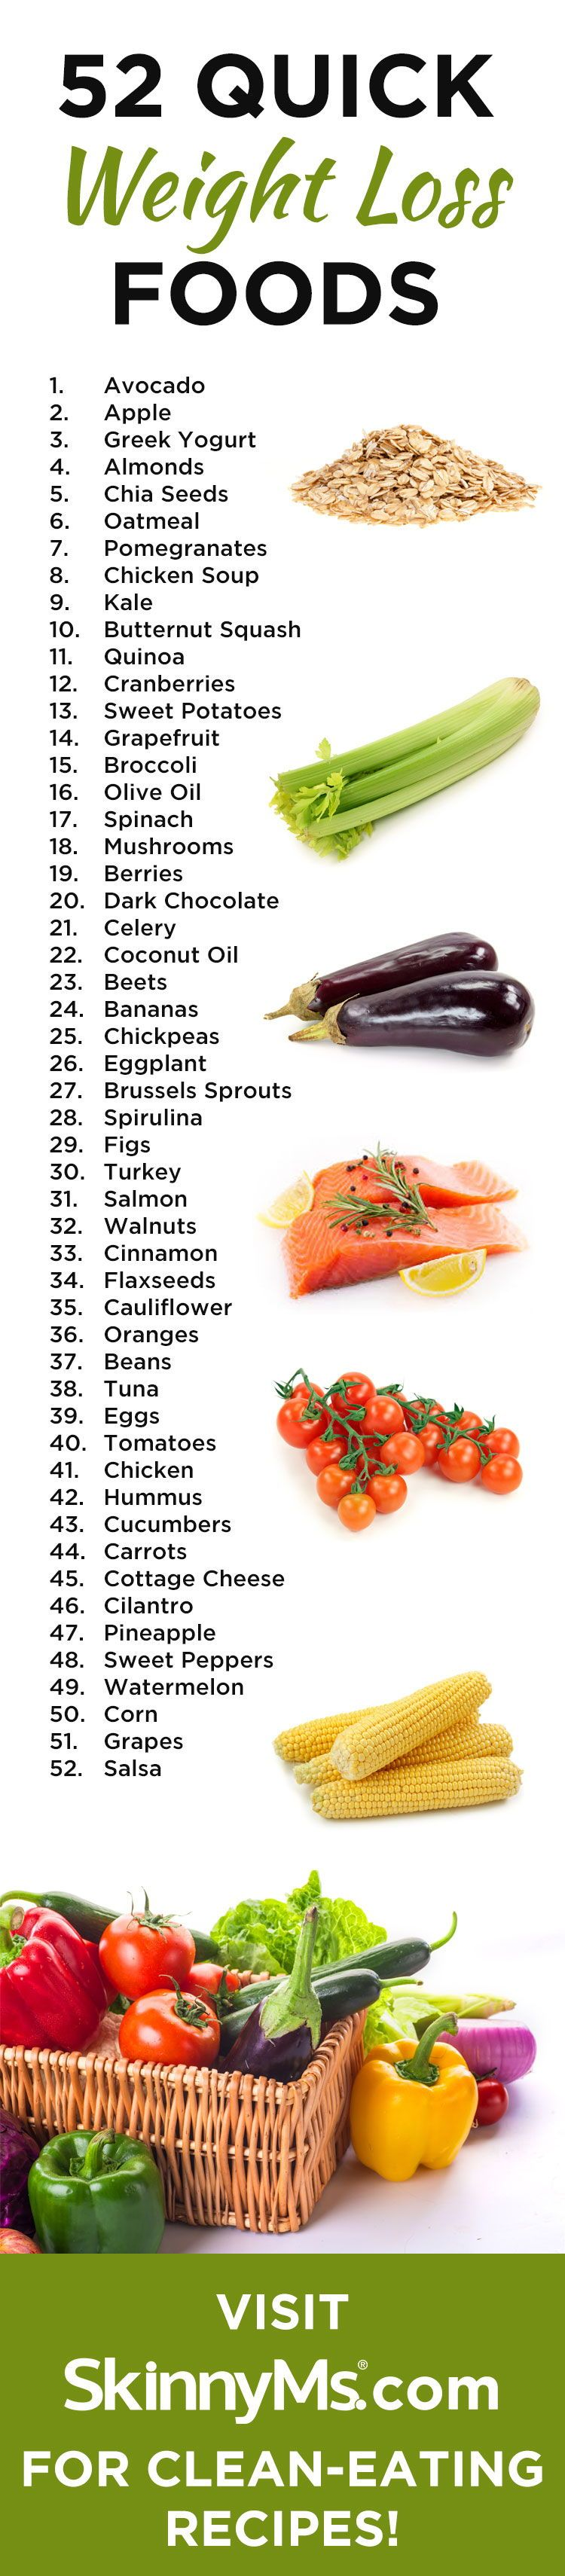 52 Quick Weight Loss Foods